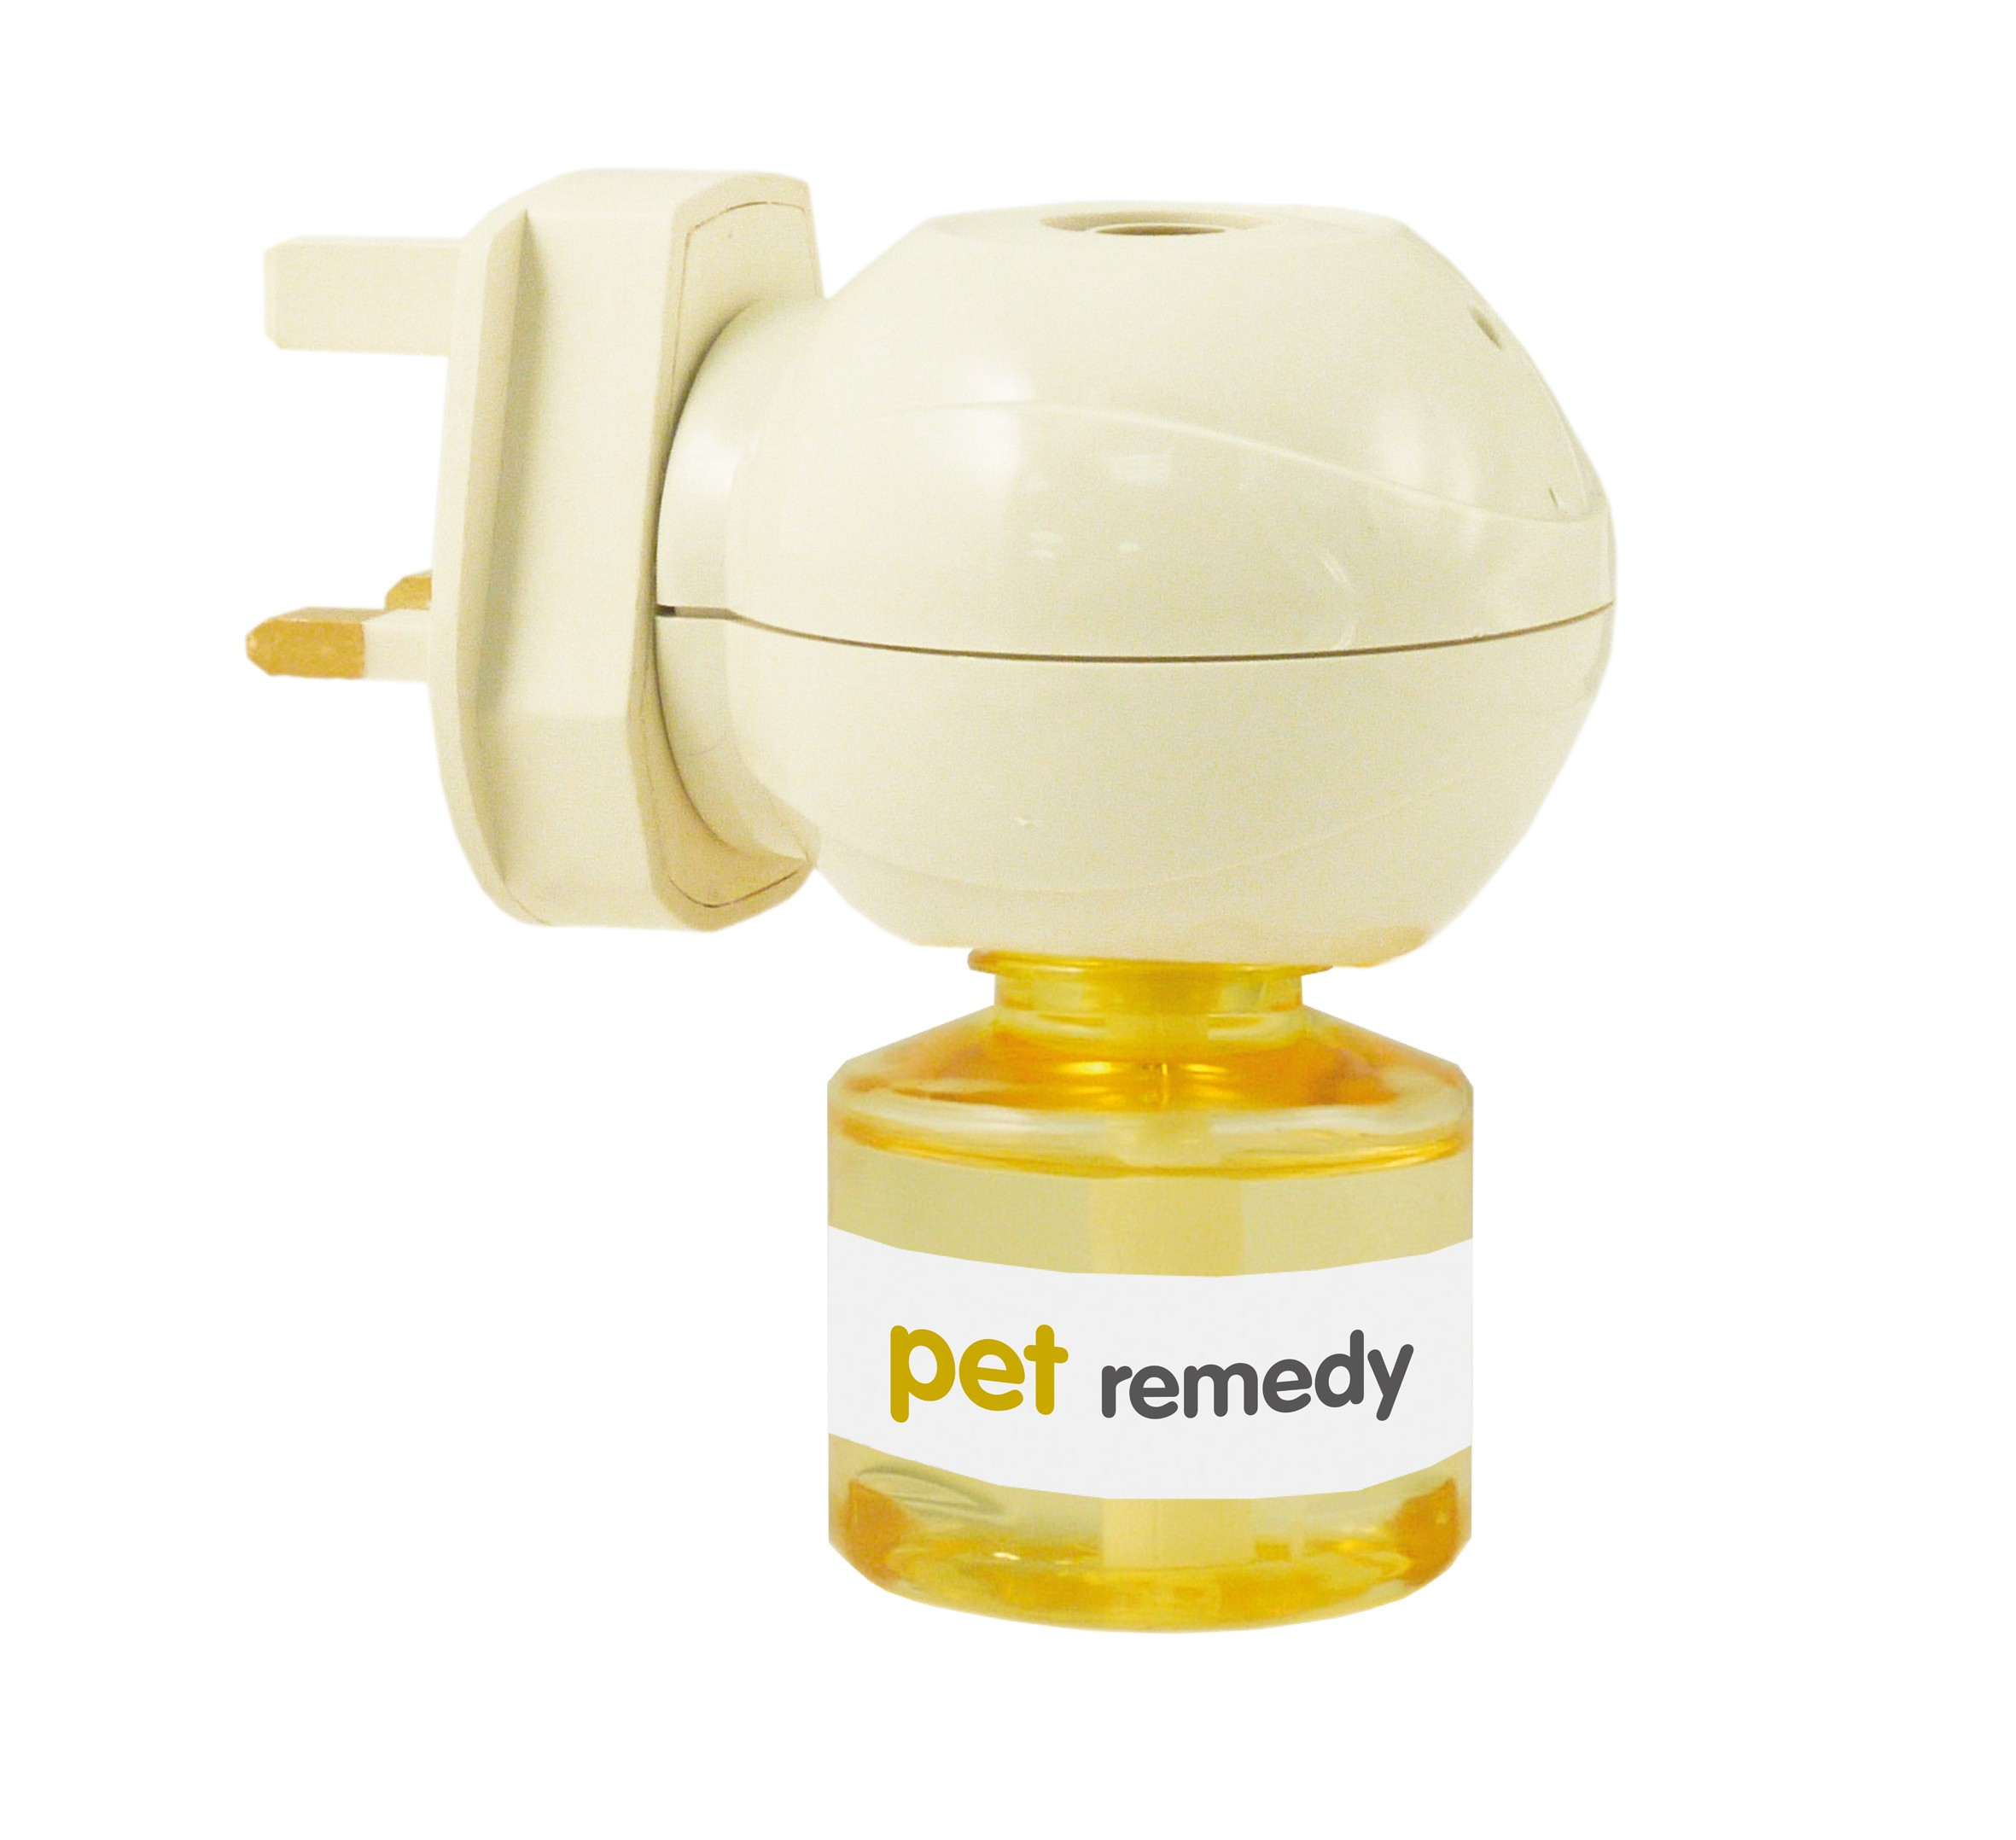 Pet Remedy Diffuser & 40ml Refill